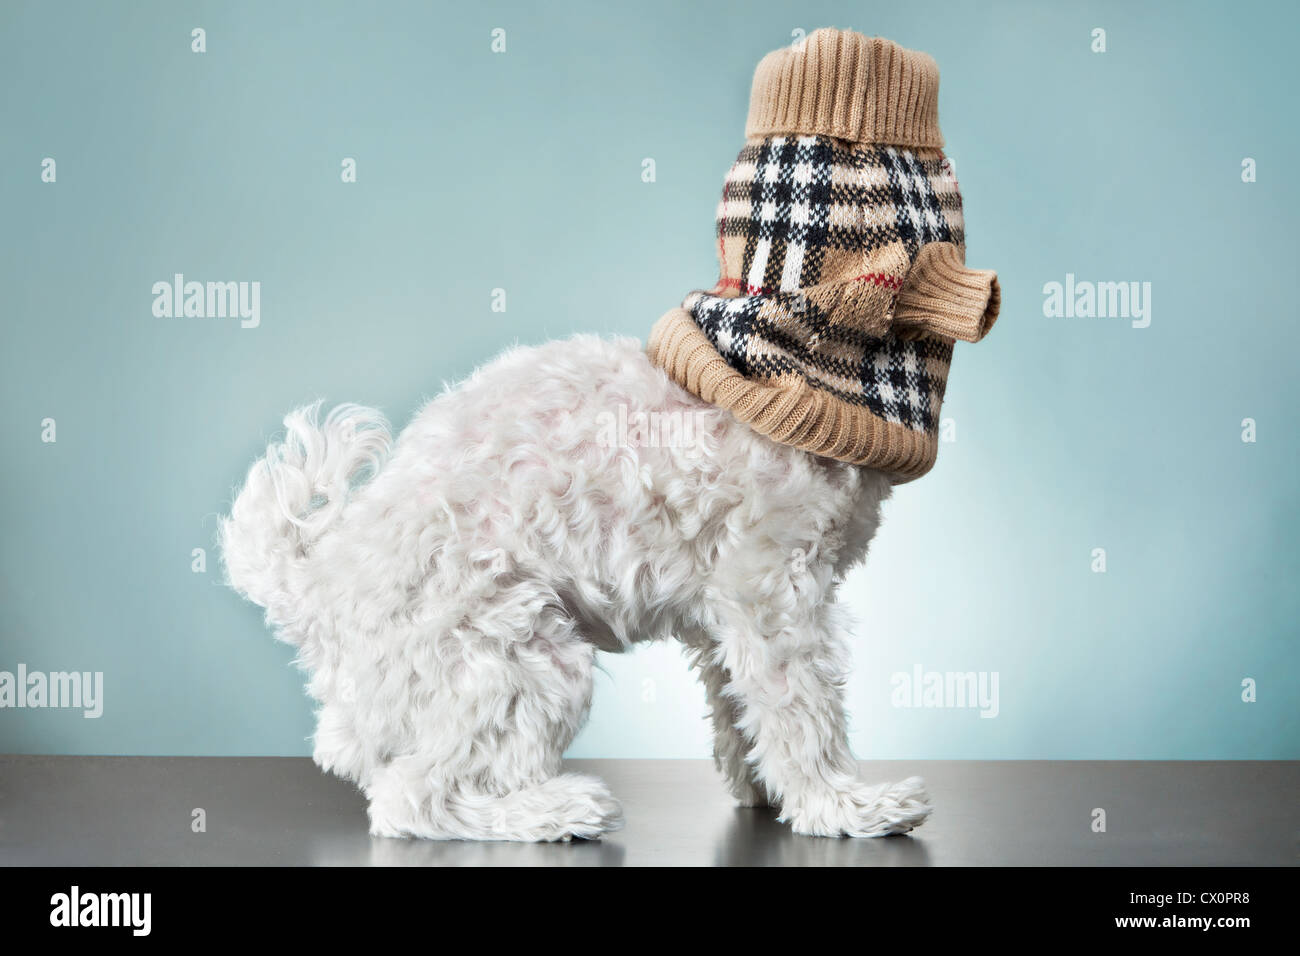 Side view of fluffy white Maltese dog with tartan woollen accessory covering head - Stock Image